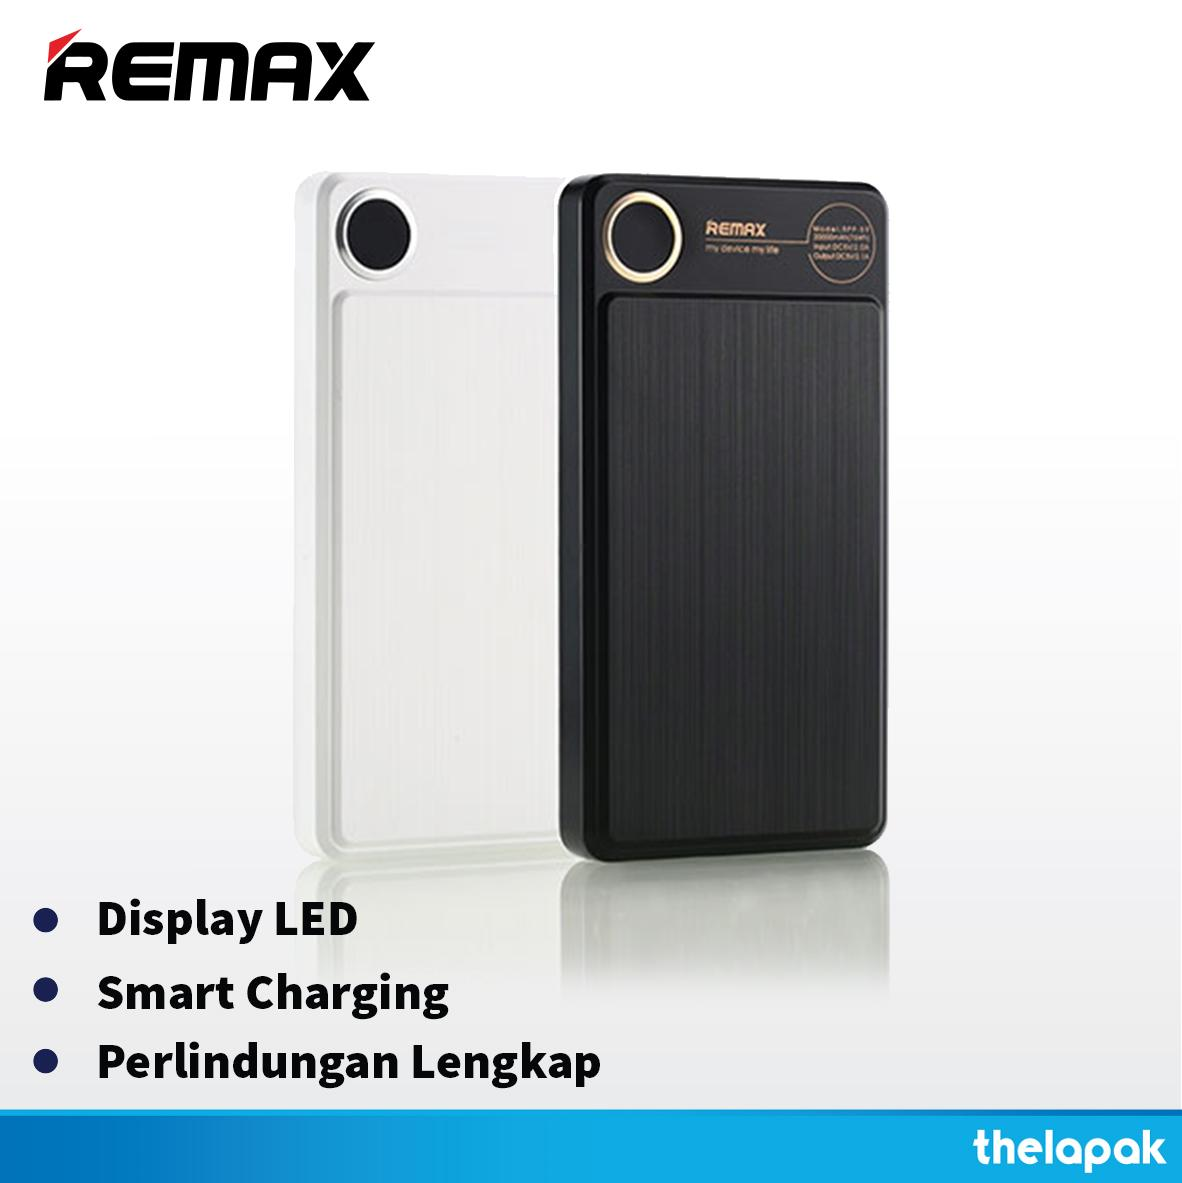 Powerbank Remax Kooker 20000 MAH Dual RPP-59 Real Capacity Original Garansi / Power bank Original / Powerbank Garansi / Powerbank Murah / Powerbank Bagus /Powerbank Awet